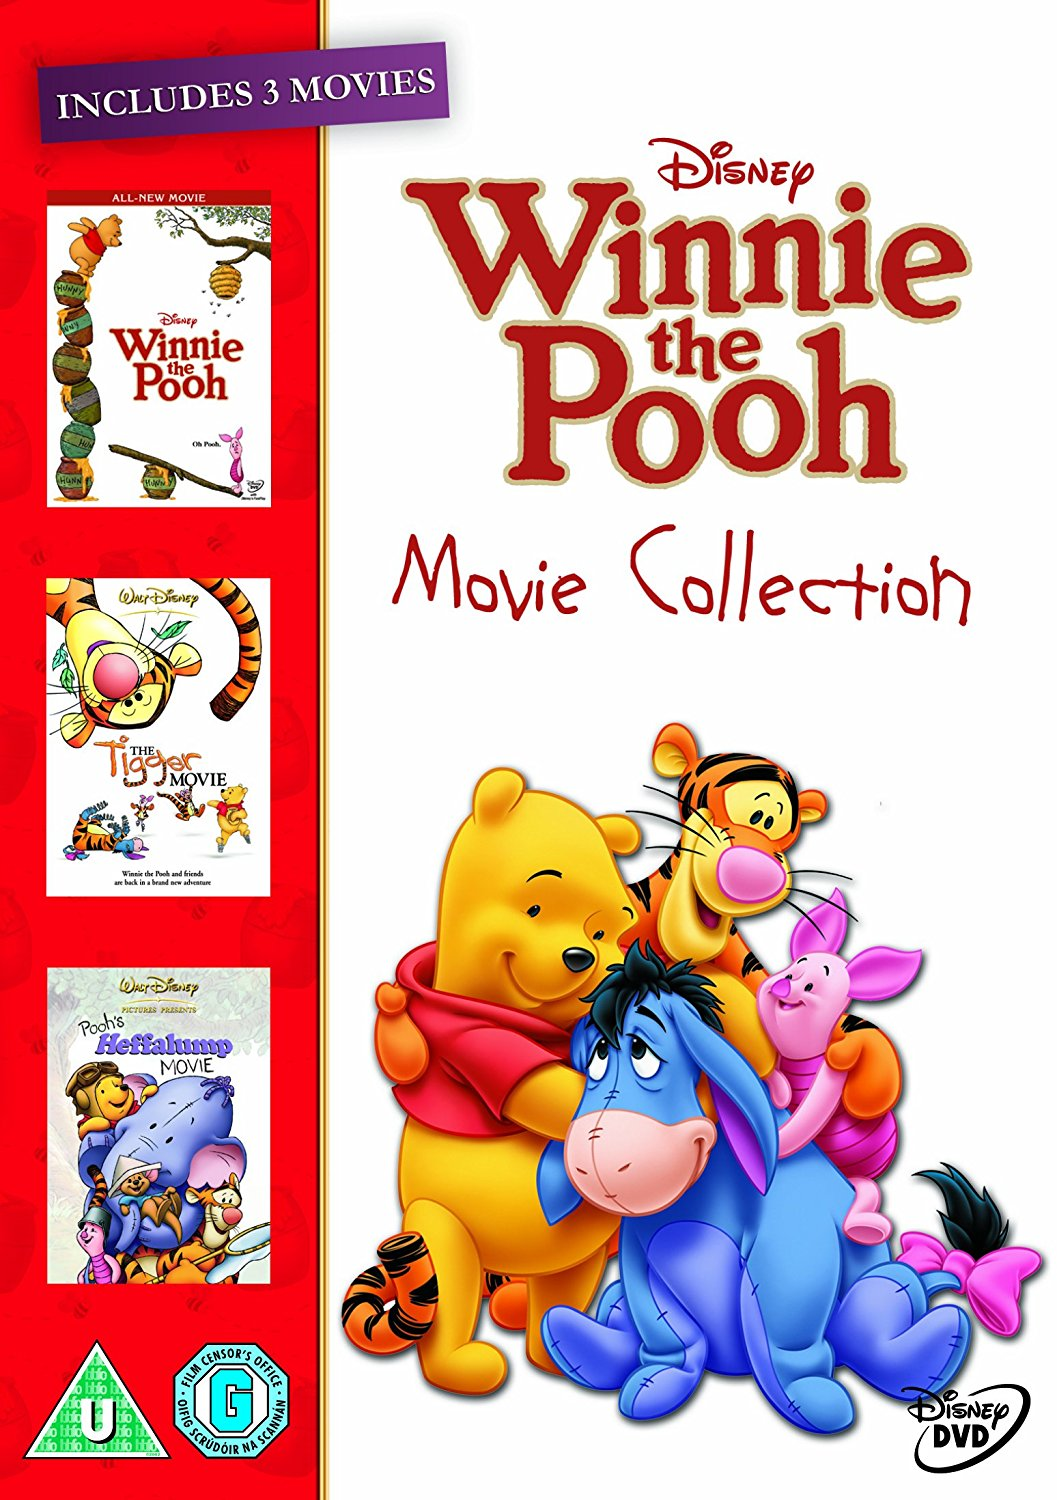 WINNIE THE POOH MOVIE DVD COLLECTION